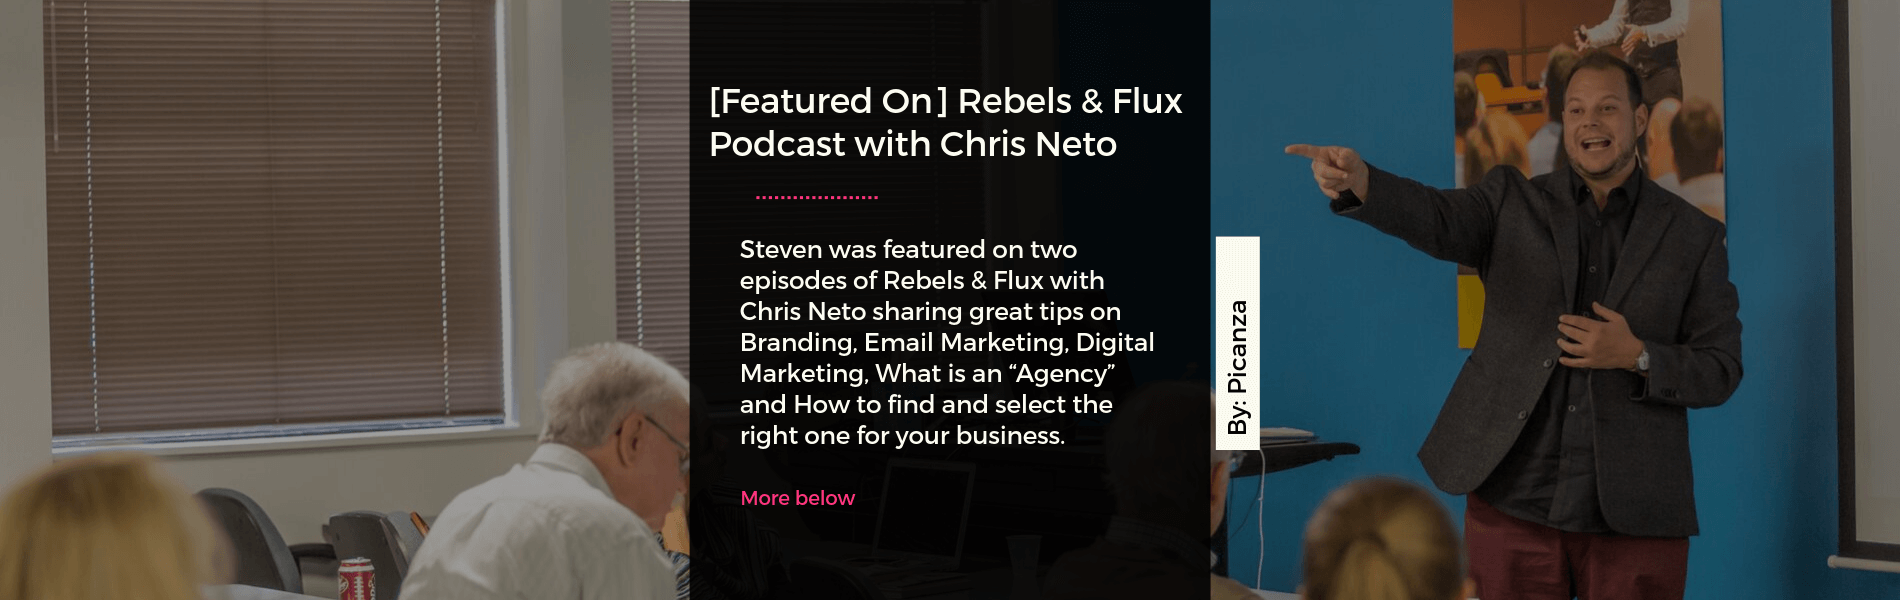 rebels and flux podcast with chris neto